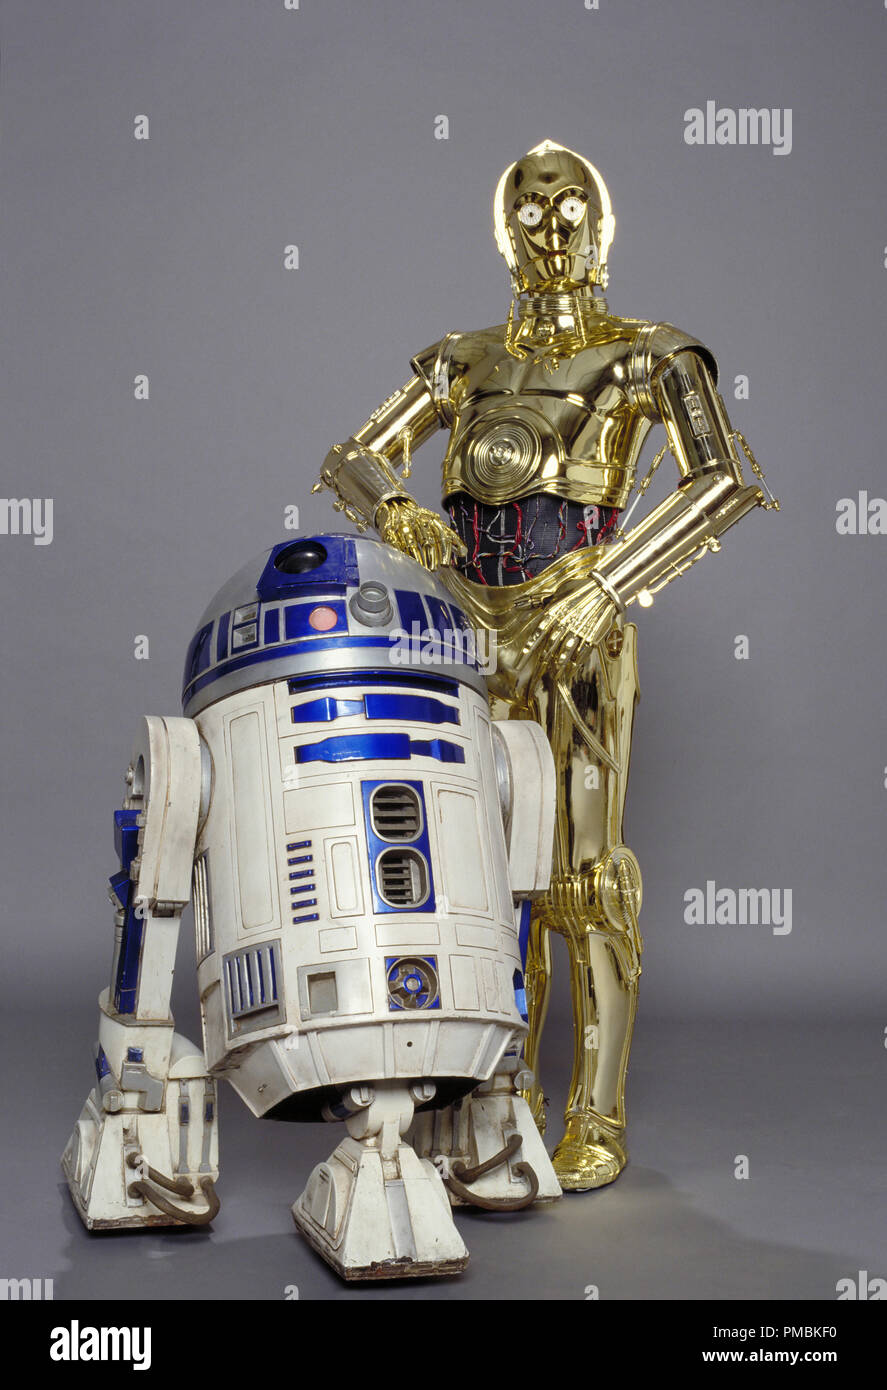 The faithful droids R2-D2 and C-3PO have been in all six movies of the Star Wars saga, and naturally return in Star Wars: Episode III Revenge of the Sith. TM & © 2005 Lucasfilm Ltd. All Rights Reserved. - Stock Image